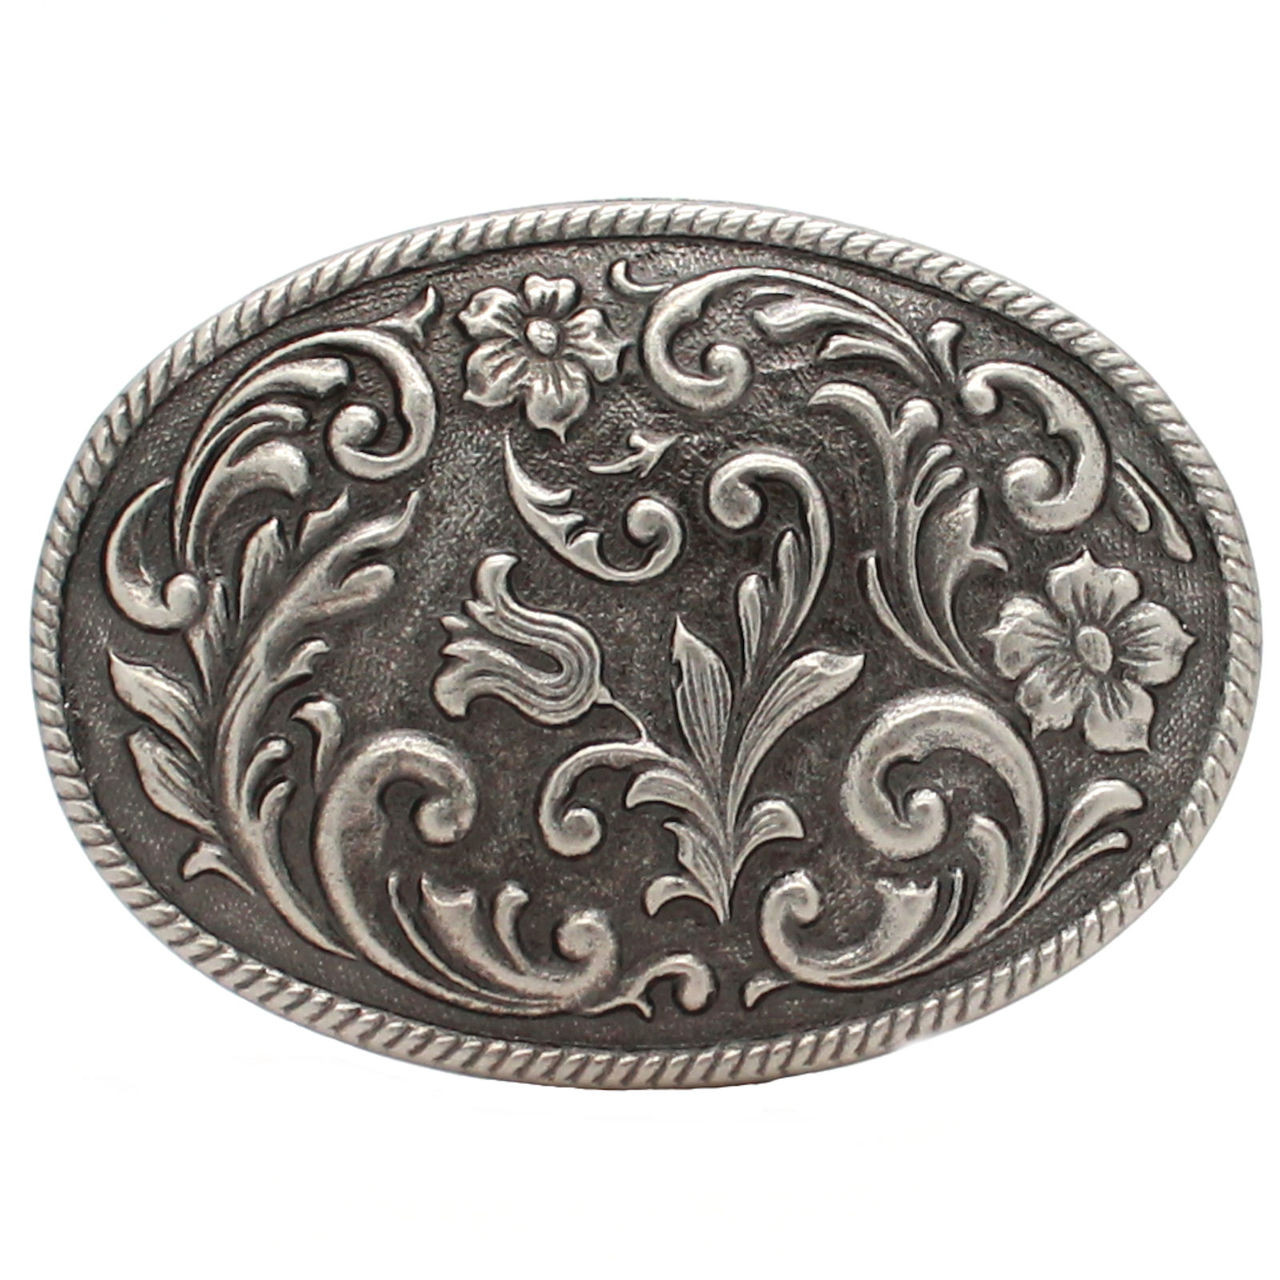 Roped Silver Dollar Metal Belt Buckle Antique Nickel 6008-21 USA